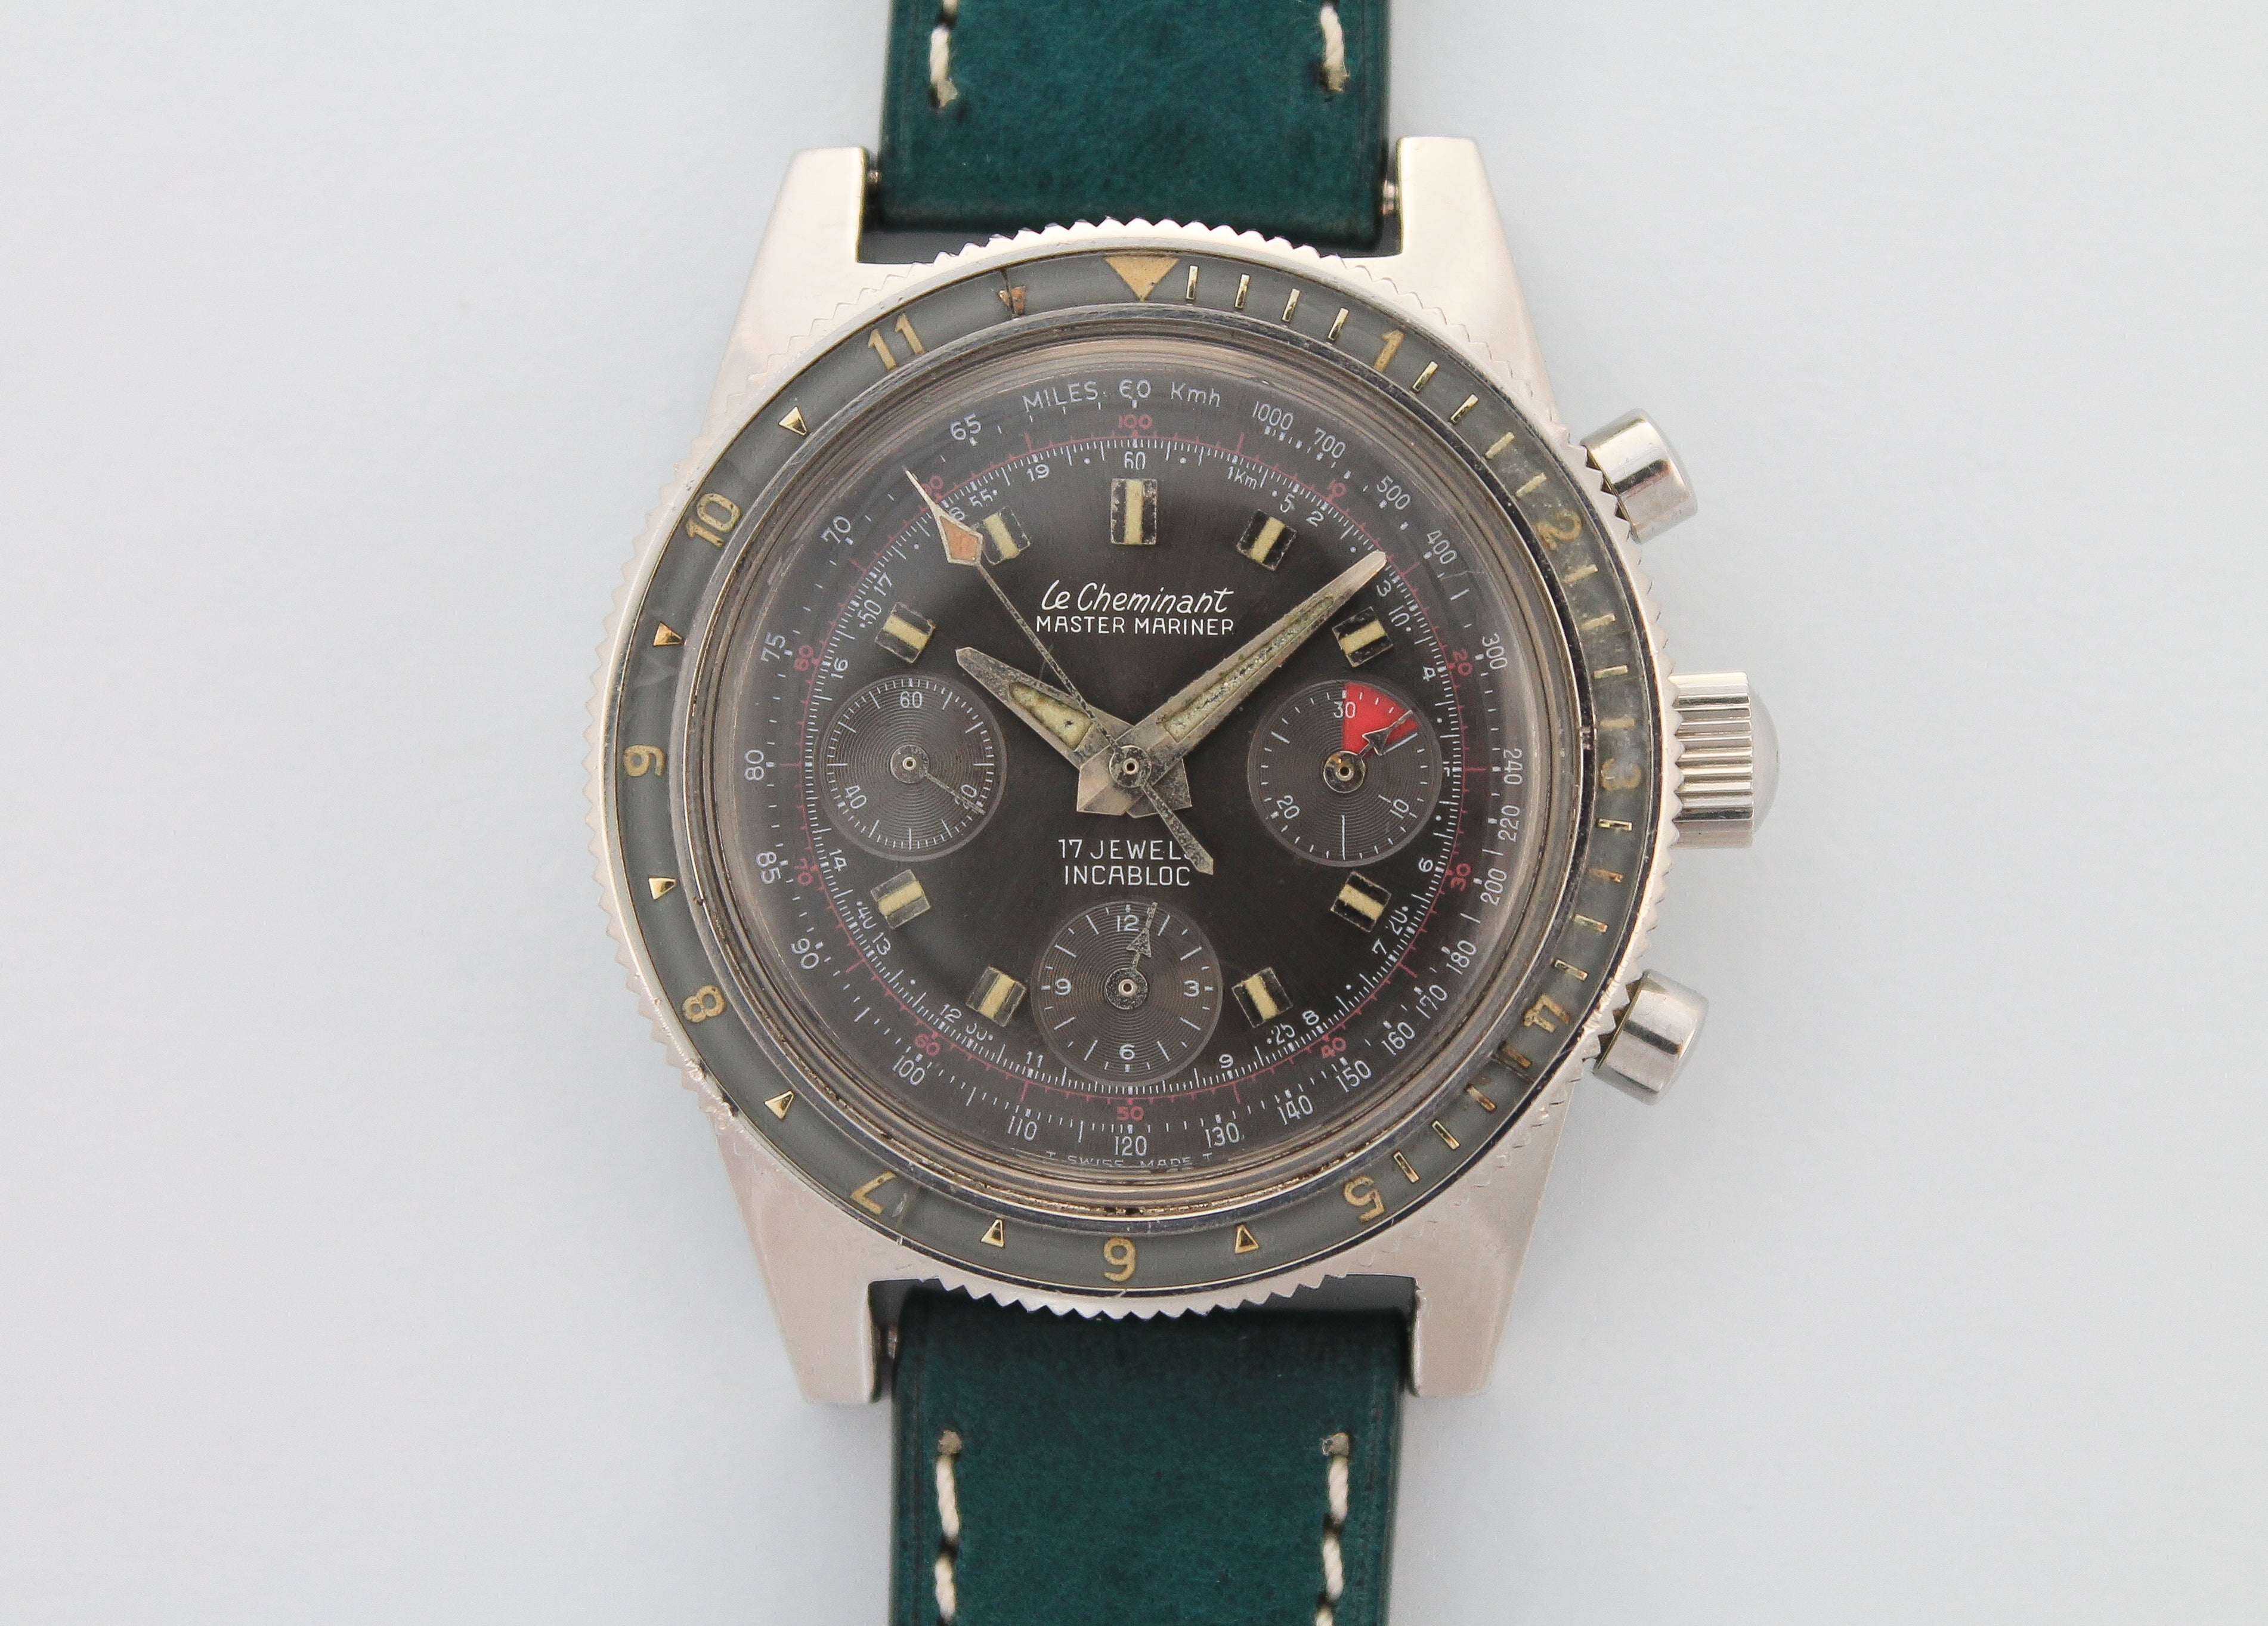 LE CHEMINANT Master Mariner Diver Chronograph (c.1960's)